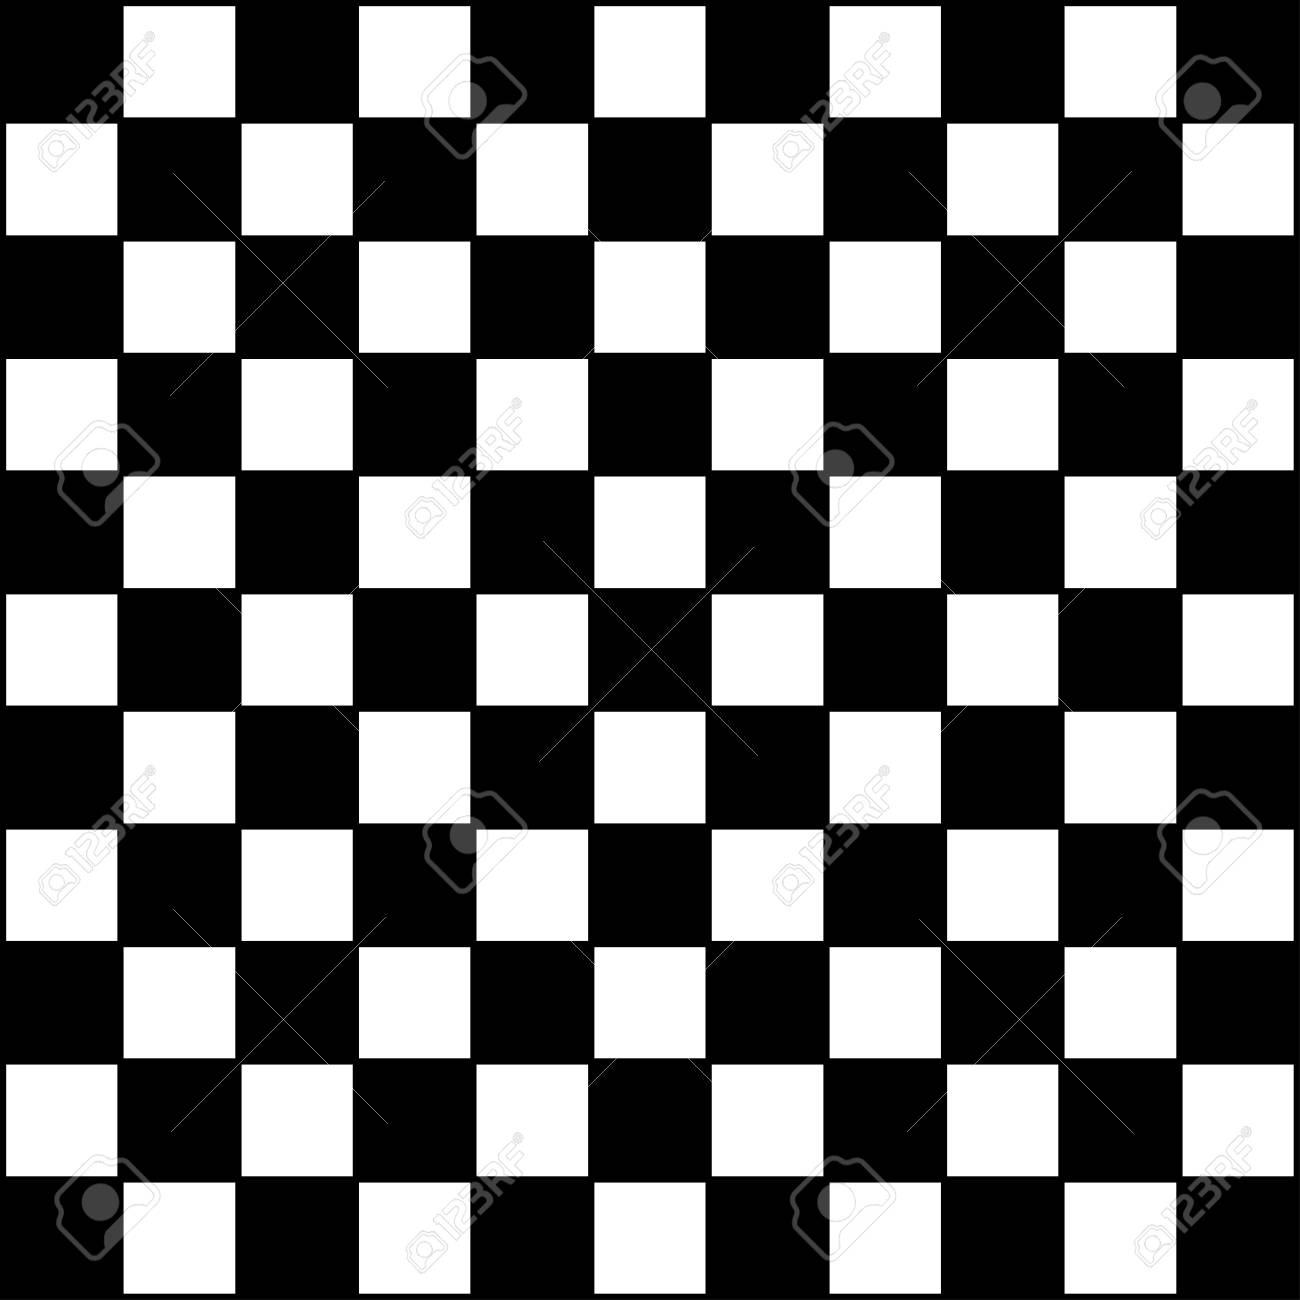 checkered chess board race background wallpaper